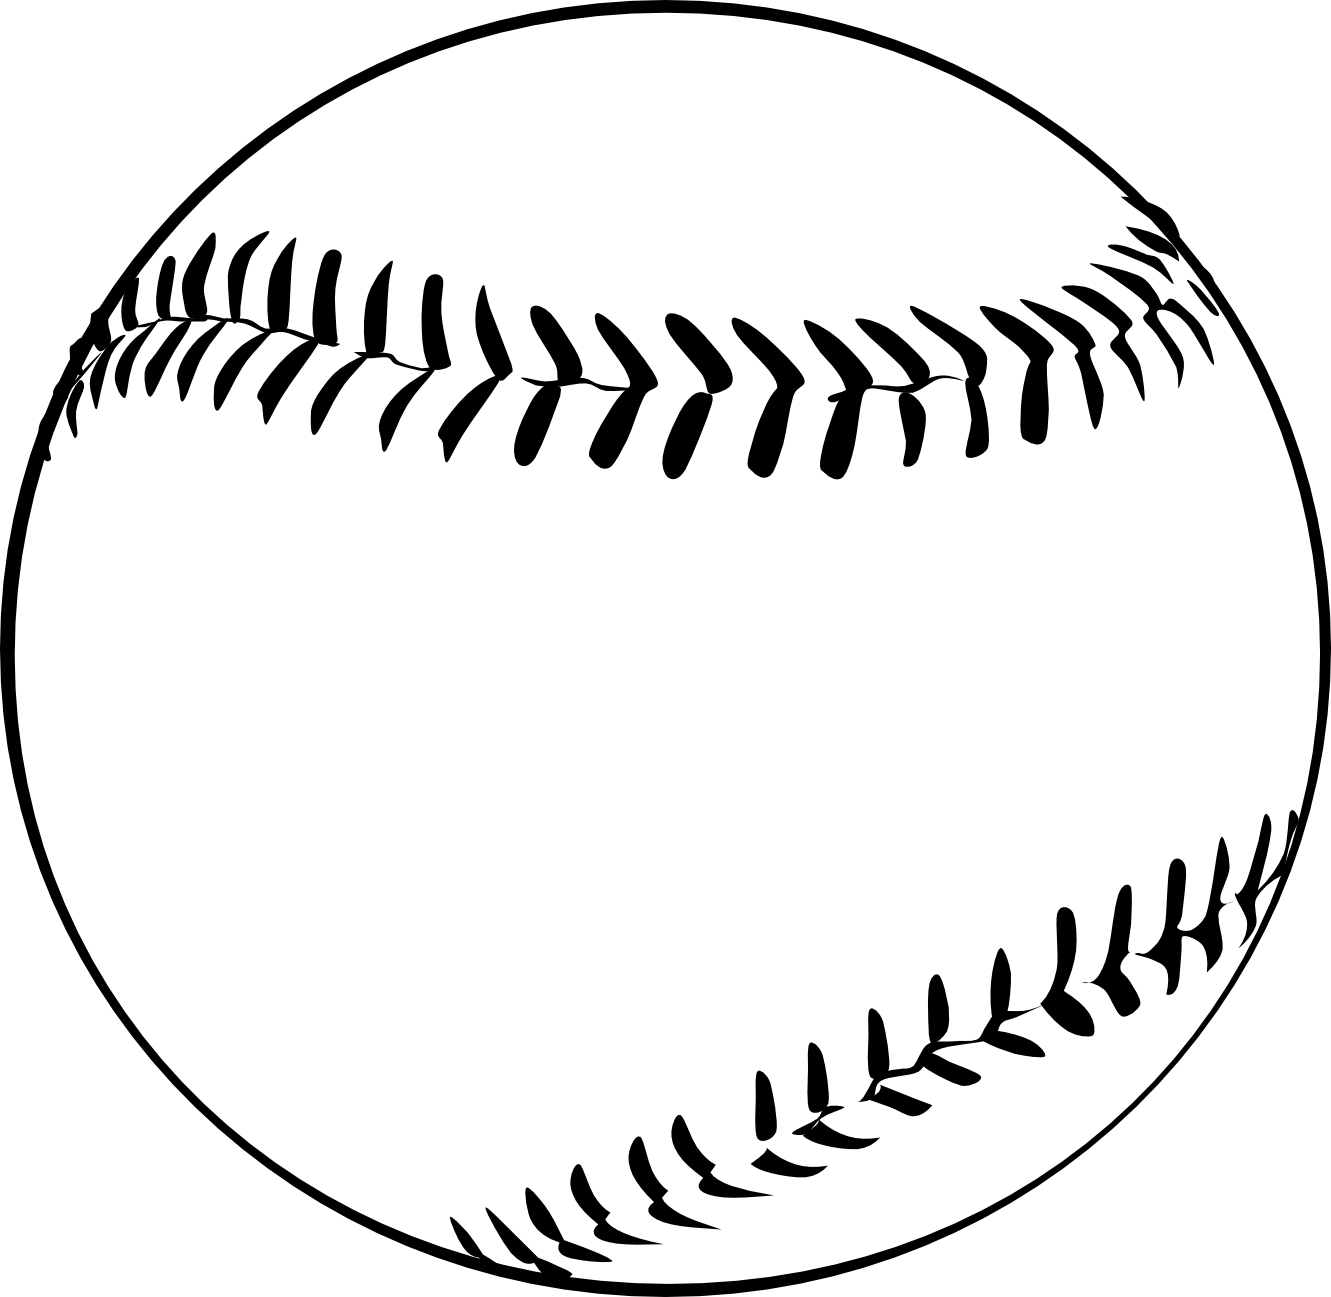 Half baseball half softball clipart transparent download Best Free Baseball Clipart Images - Vector Art Library transparent download